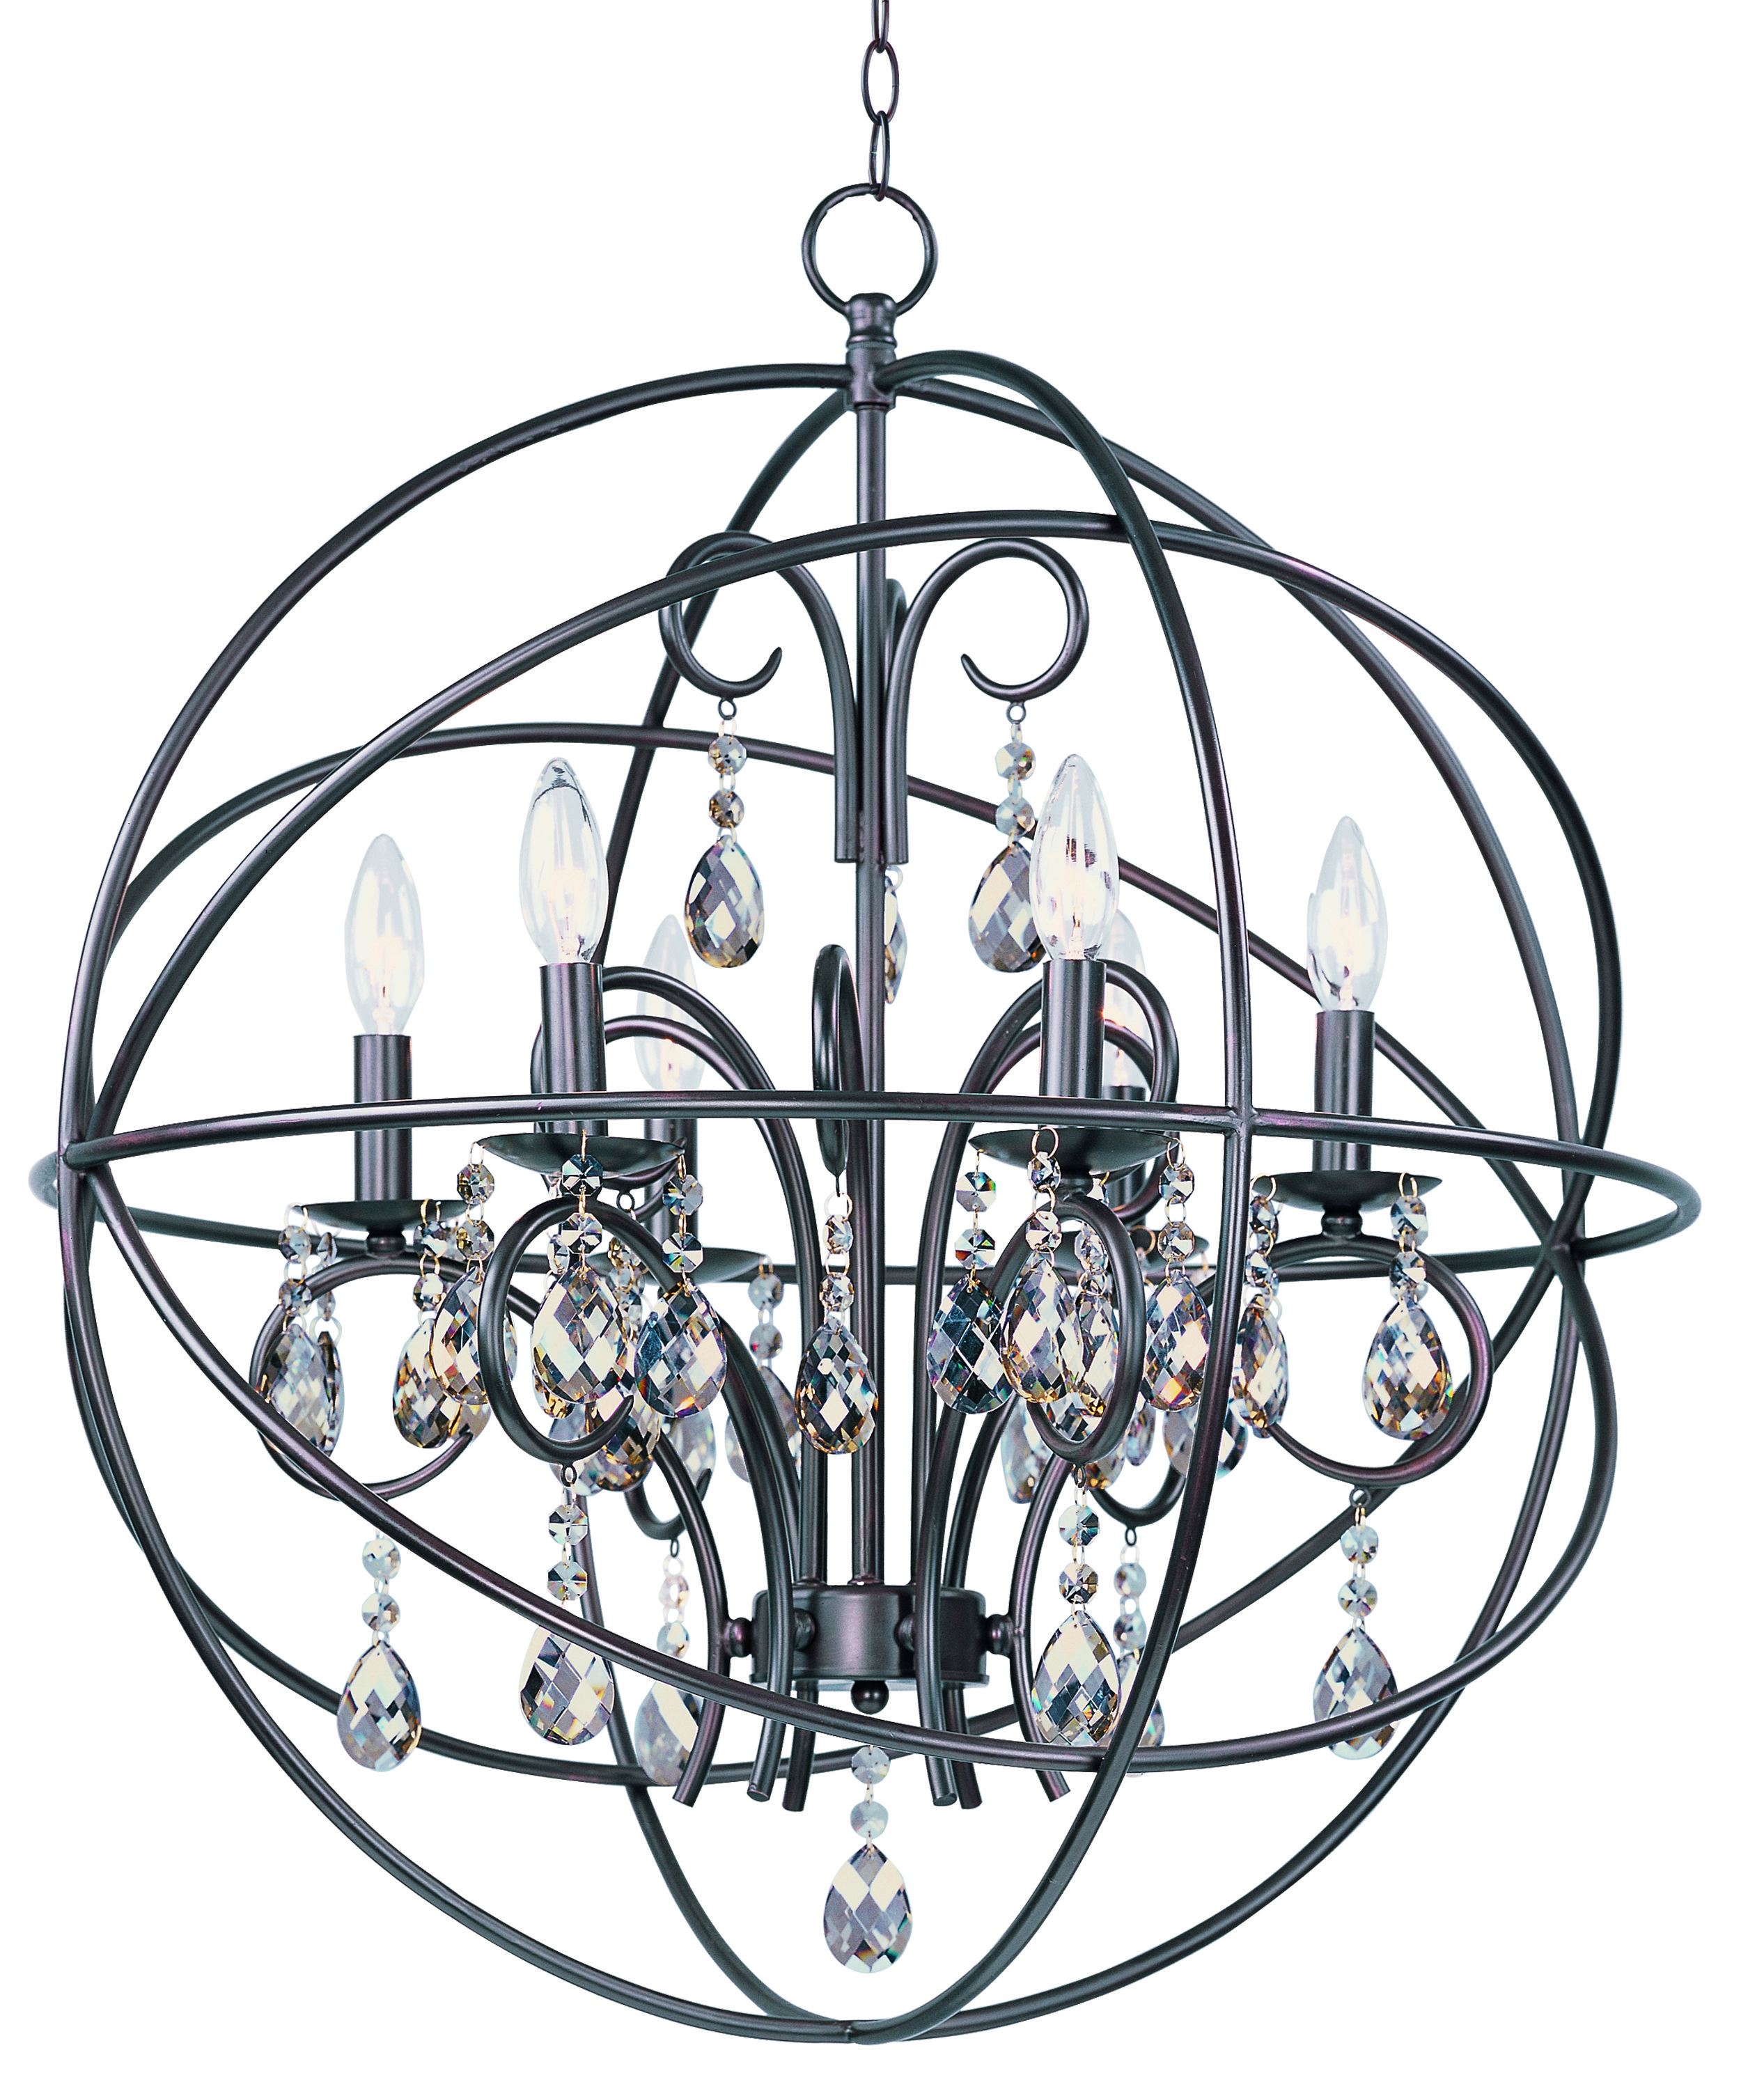 turquoise study bronze designs shades bedroom ikea drum shell crystal of furniture chandelier orb light shade modern